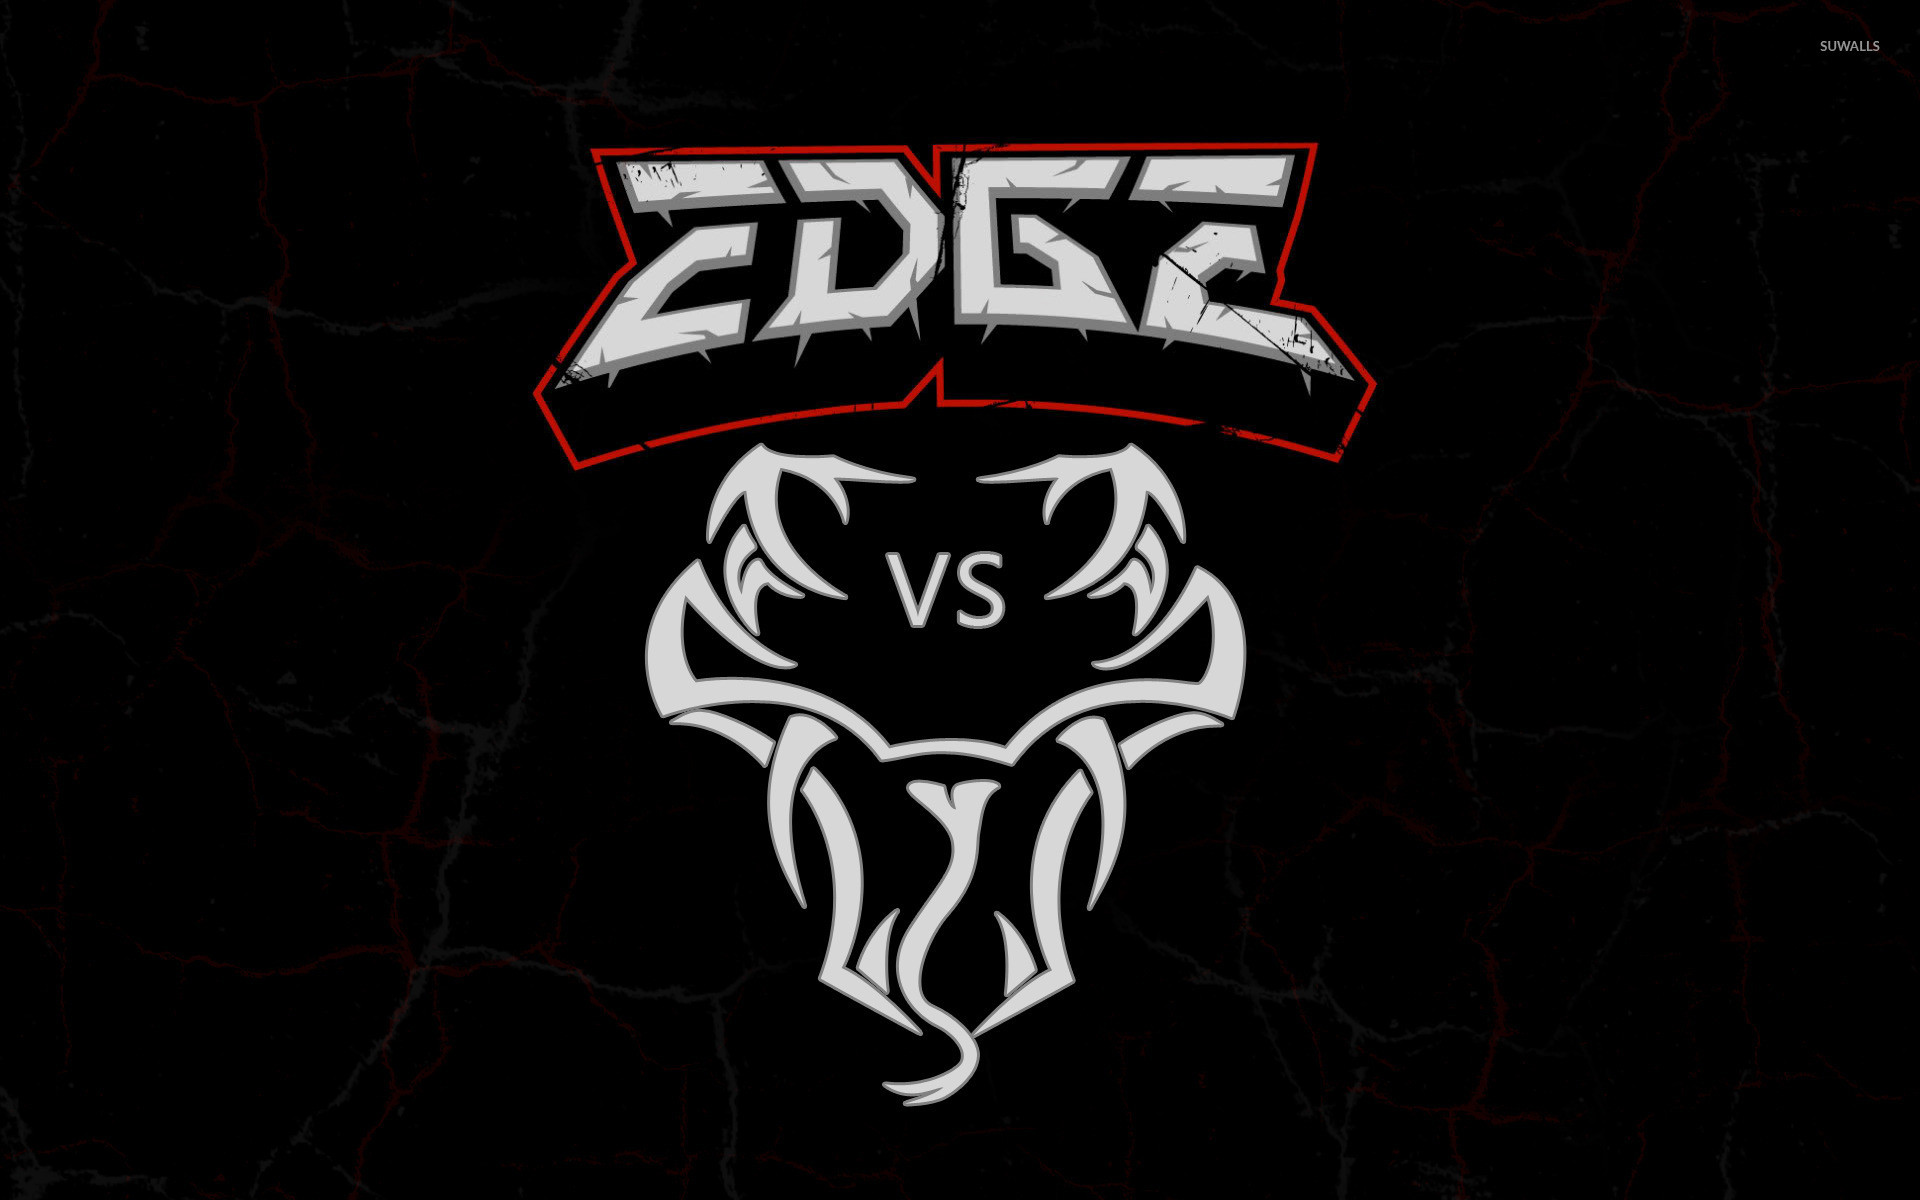 1920x1200 Edge vs Randy Orton logo wallpaper